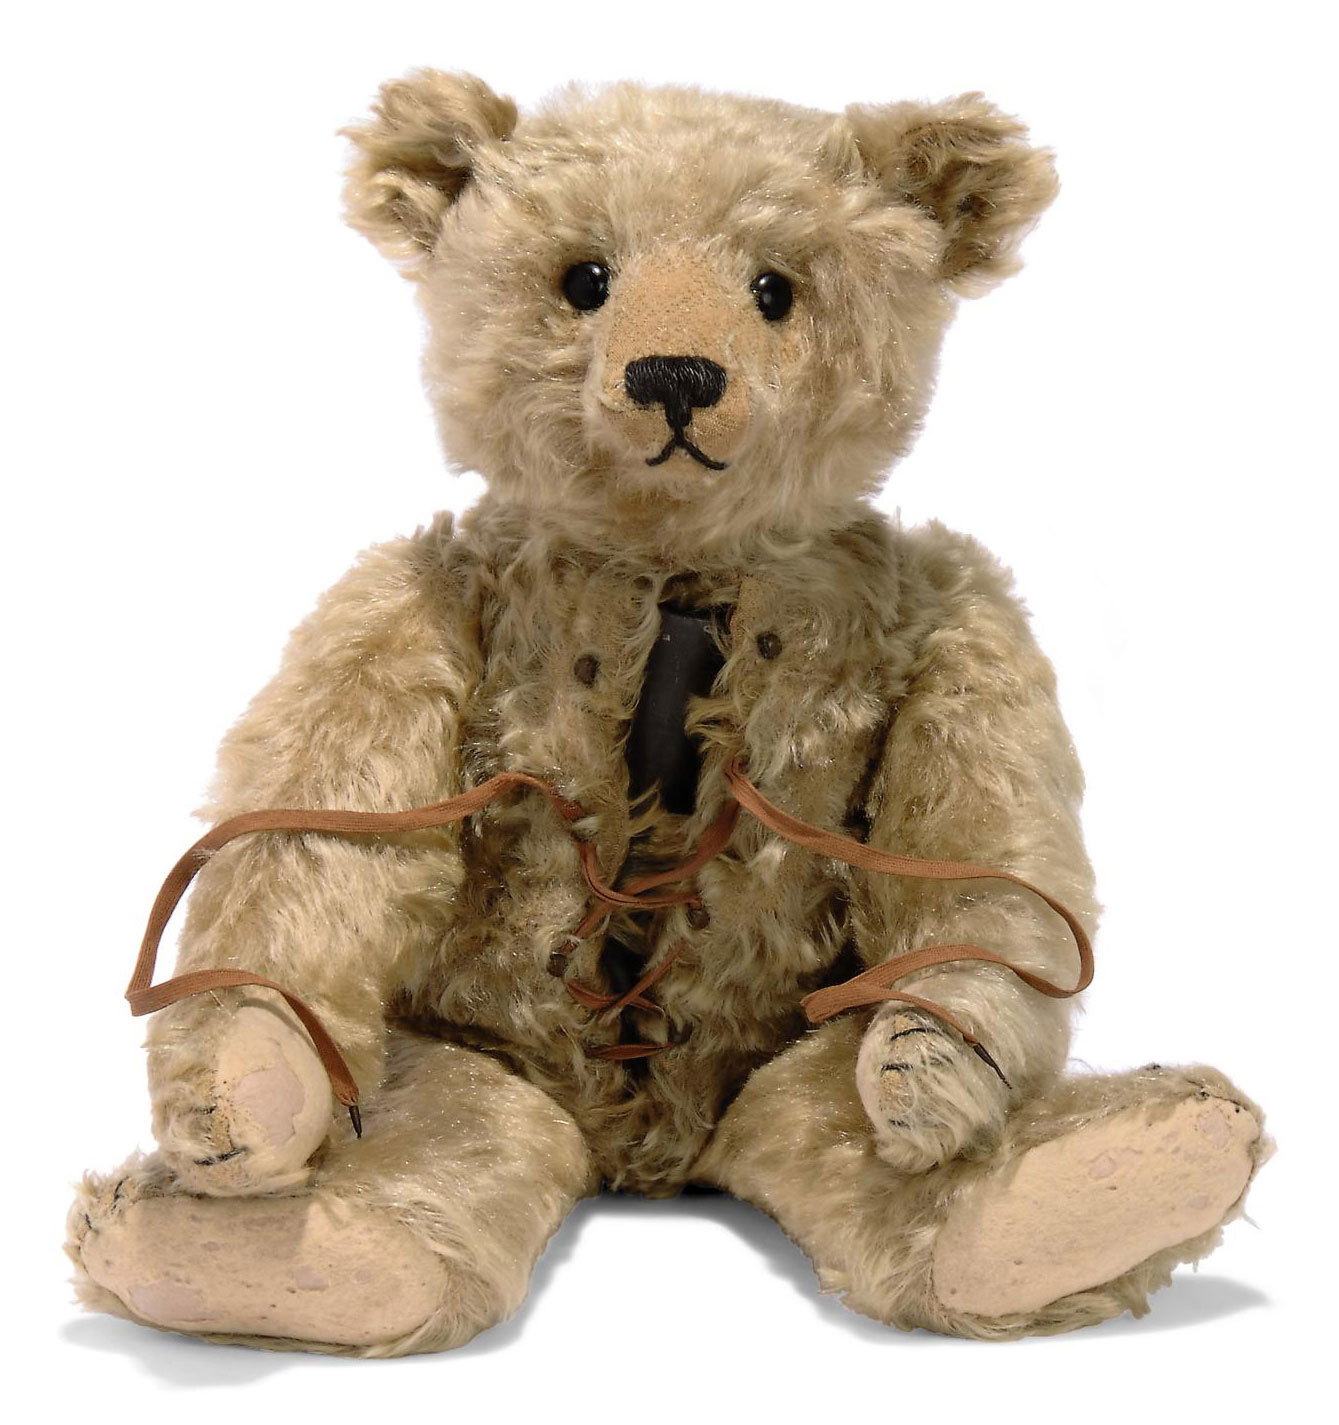 A STEIFF TEDDY BEAR WITH HOT-WATER BOTTLE, (5335,b), jointed, blonde mohair, black boot button eyes, black stitching, metal canister in body, hooks and laces to front seam and FF button, circa 1910 --19¾in. (50cm.) high (some slight wear, repairs to pads and nose restitched)